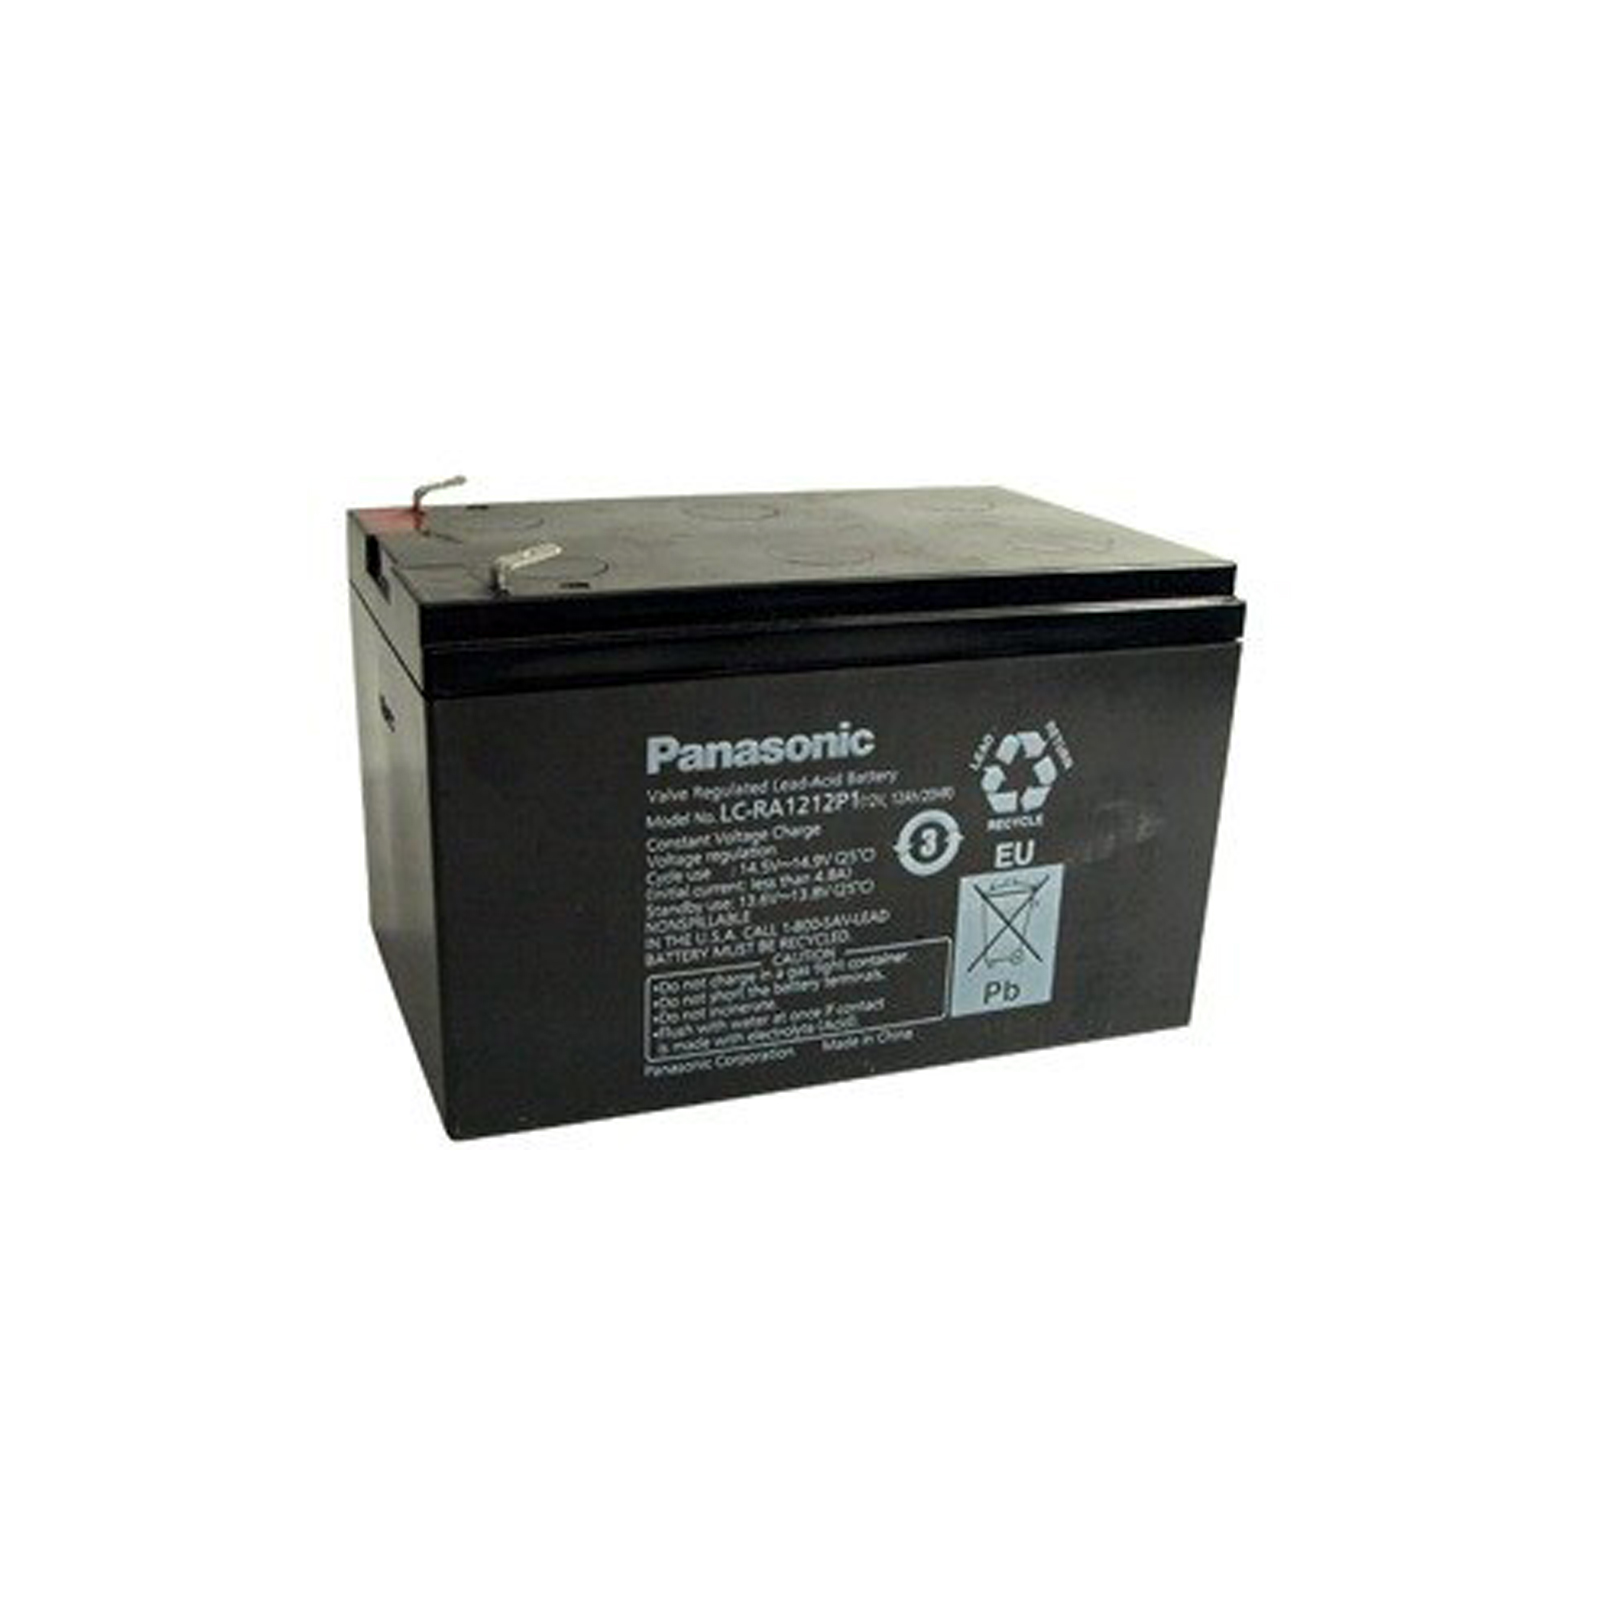 Sealed Lead Acid Battery on Panasonic Lc Ra1212p1 Sla Sealed Lead Acid Battery 12v 12ah   Ebay